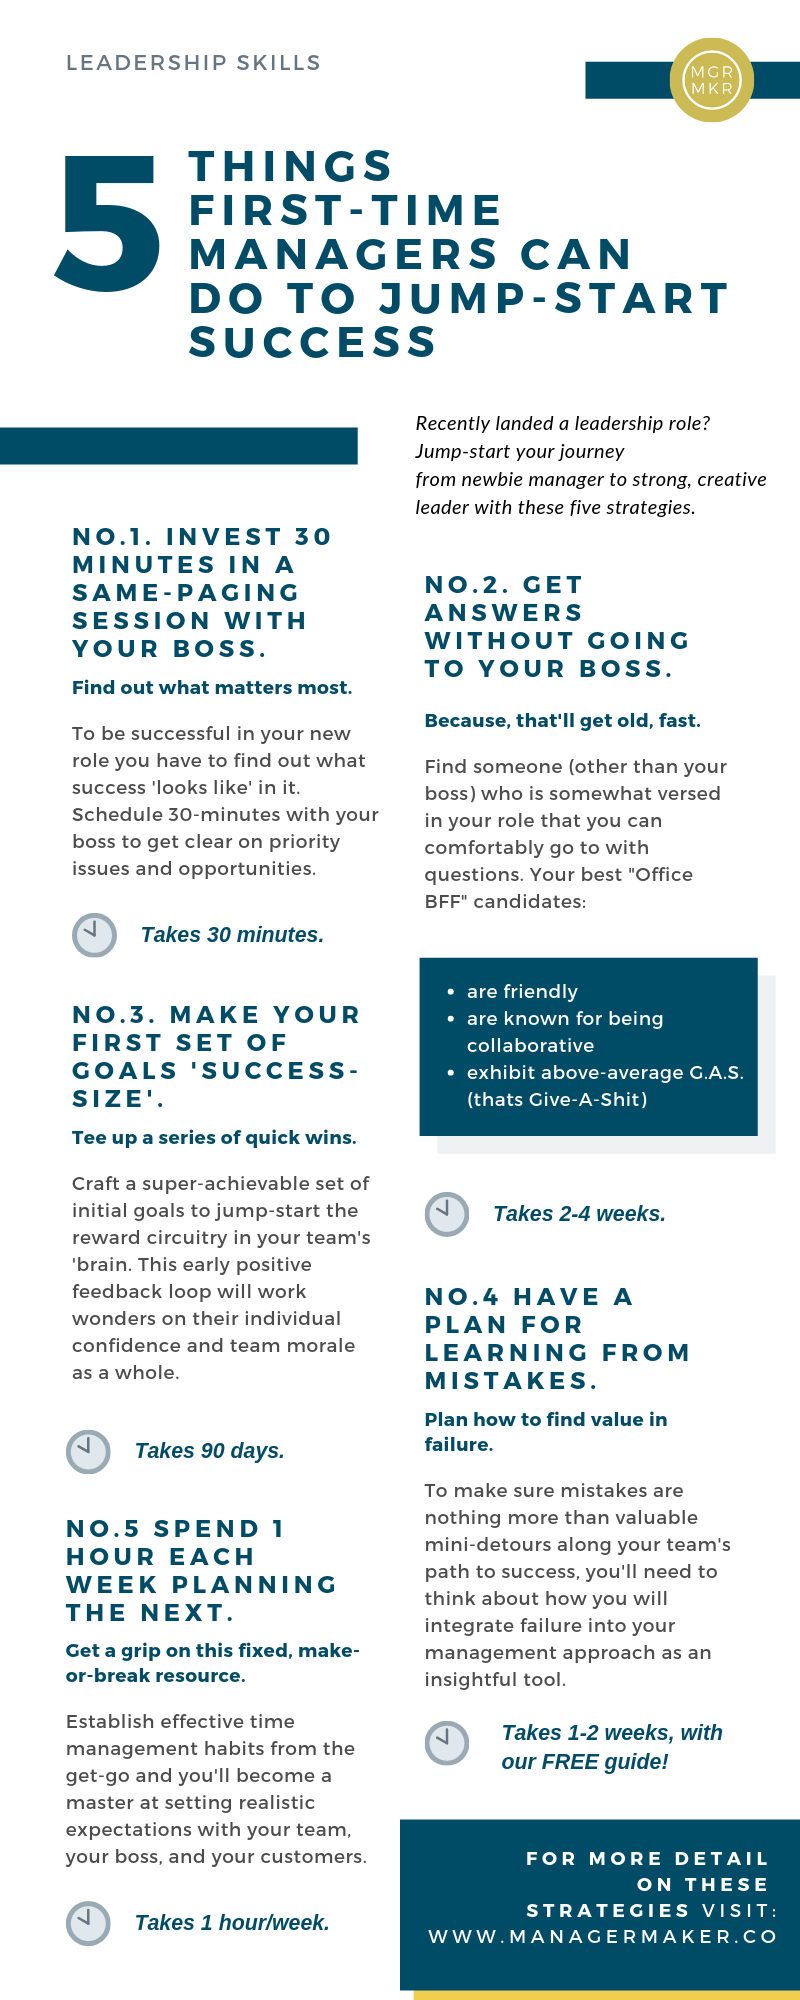 5 Things to First-time Managers Can do to Jump-Start Success Infographic